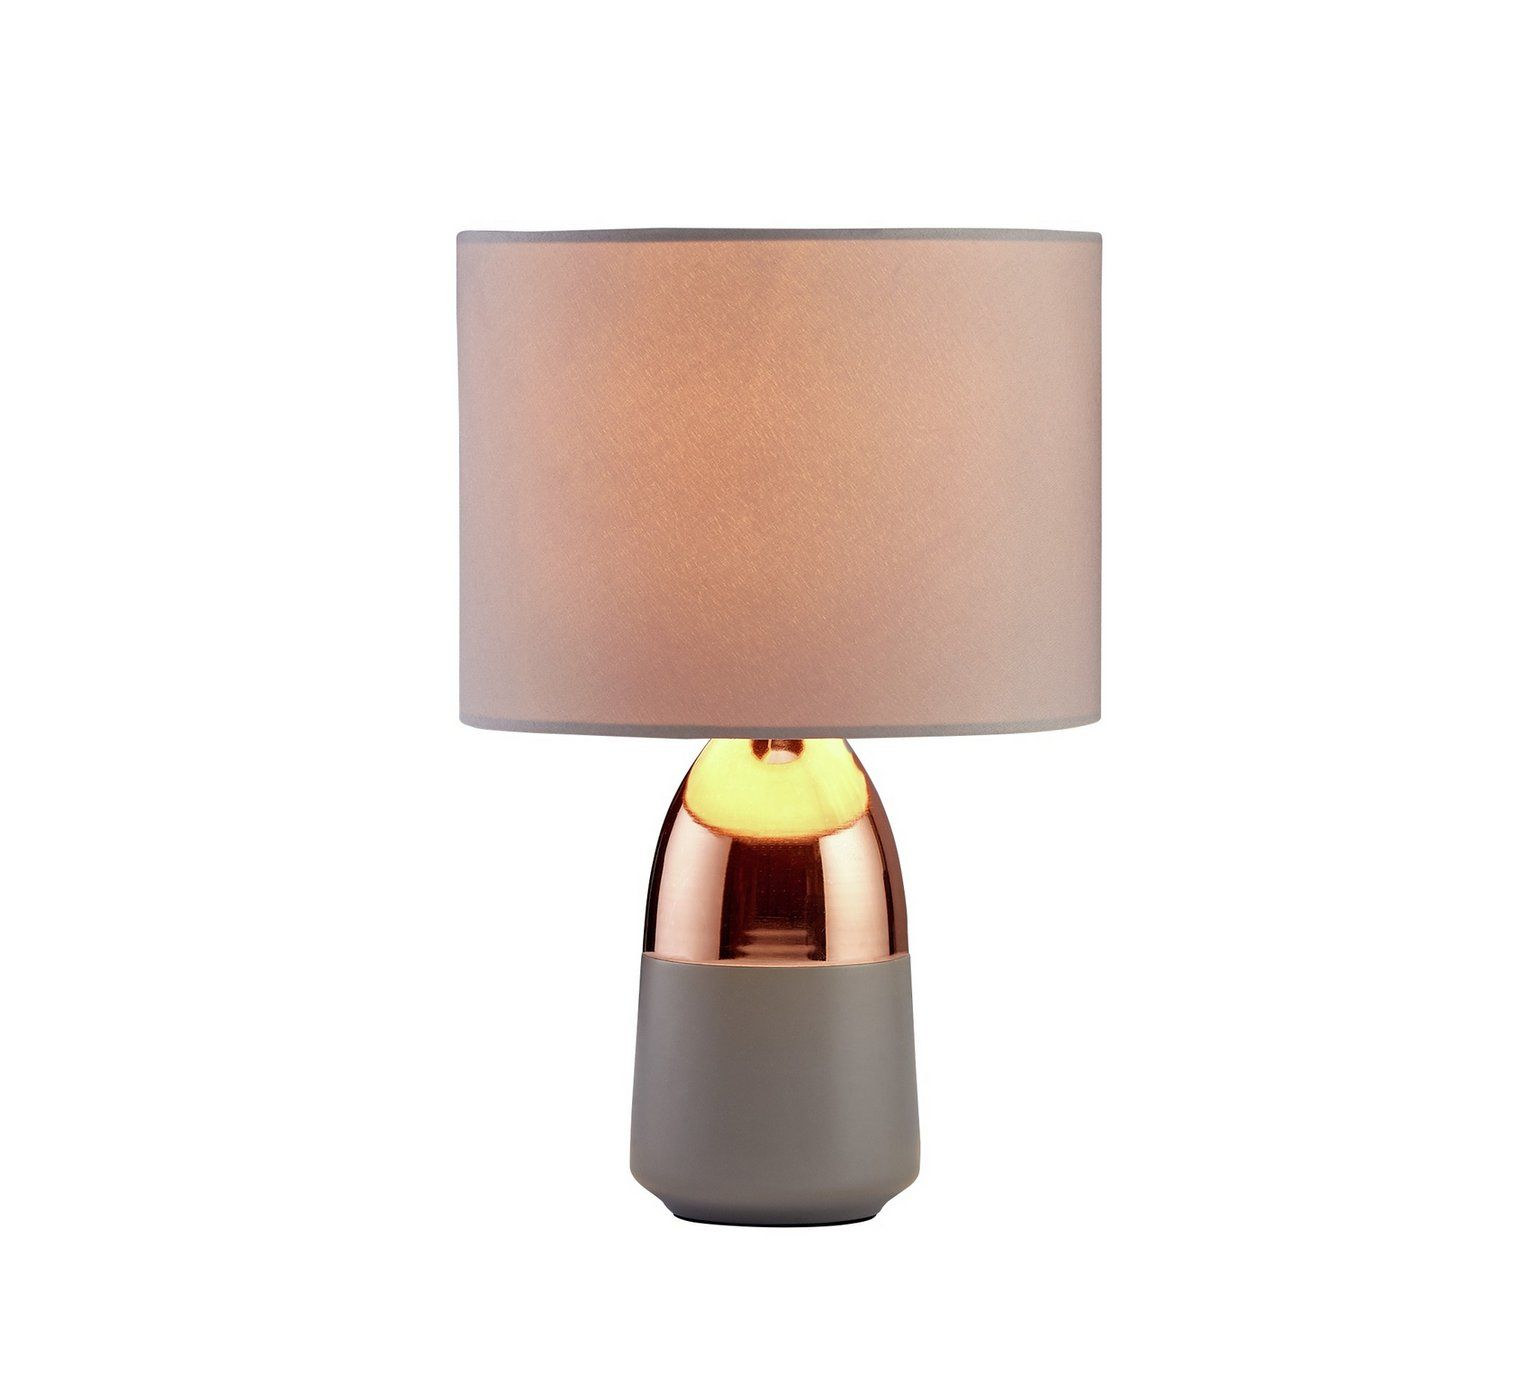 Buy Argos Home Duno Touch Table Lamp Grey Copper Table Lamps Grey Table Lamps Table Lamp Copper Table Lamp